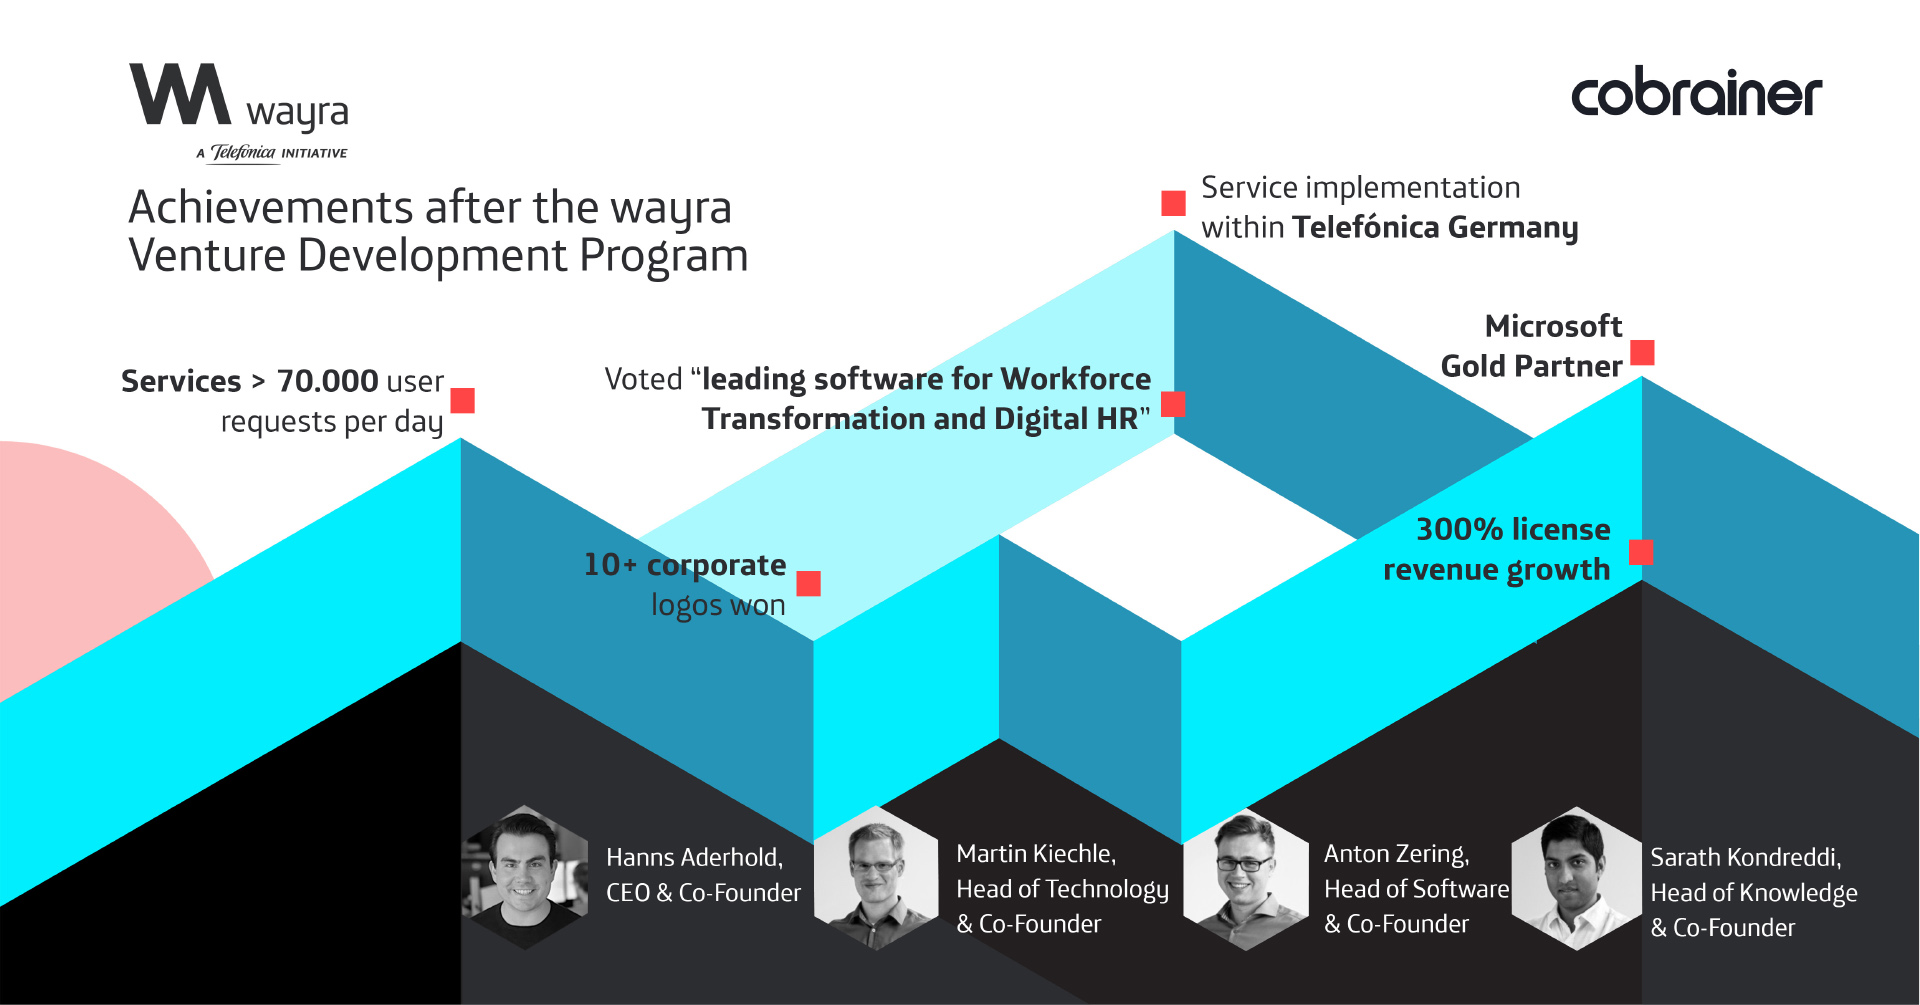 wayra Germany's portfolio startup Cobrainer's achievement since accelerator program